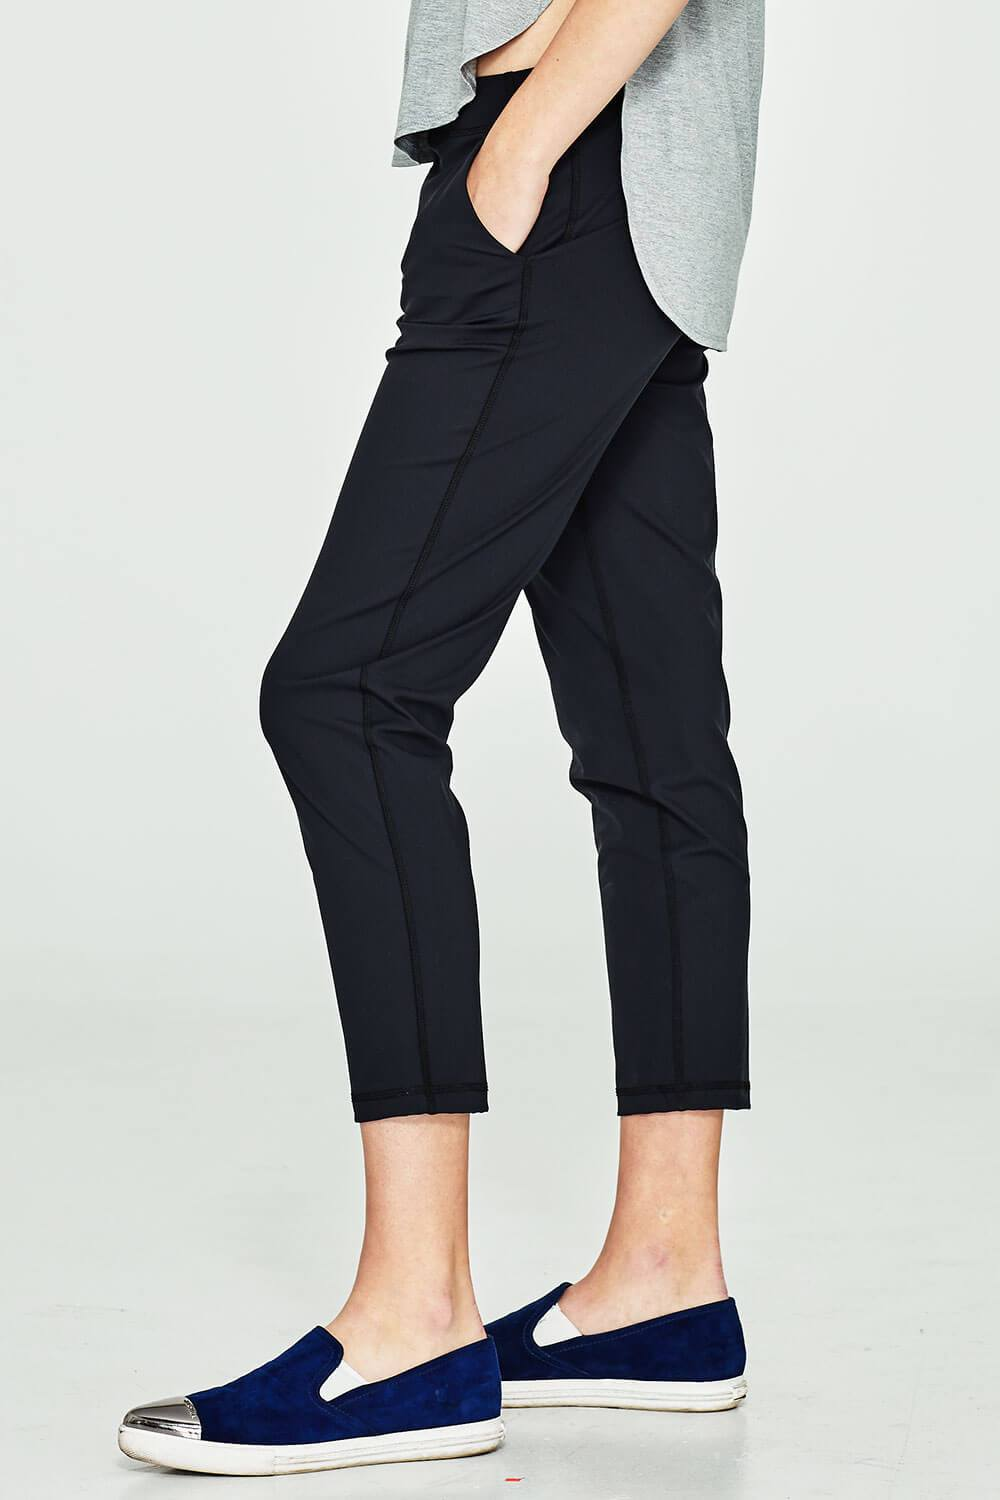 Dailo Pant - Tonic UAE Dailo Pant - Athletic Wear Tonic UAE - tonic athletic apparel Tonic UAE - tonic UAE